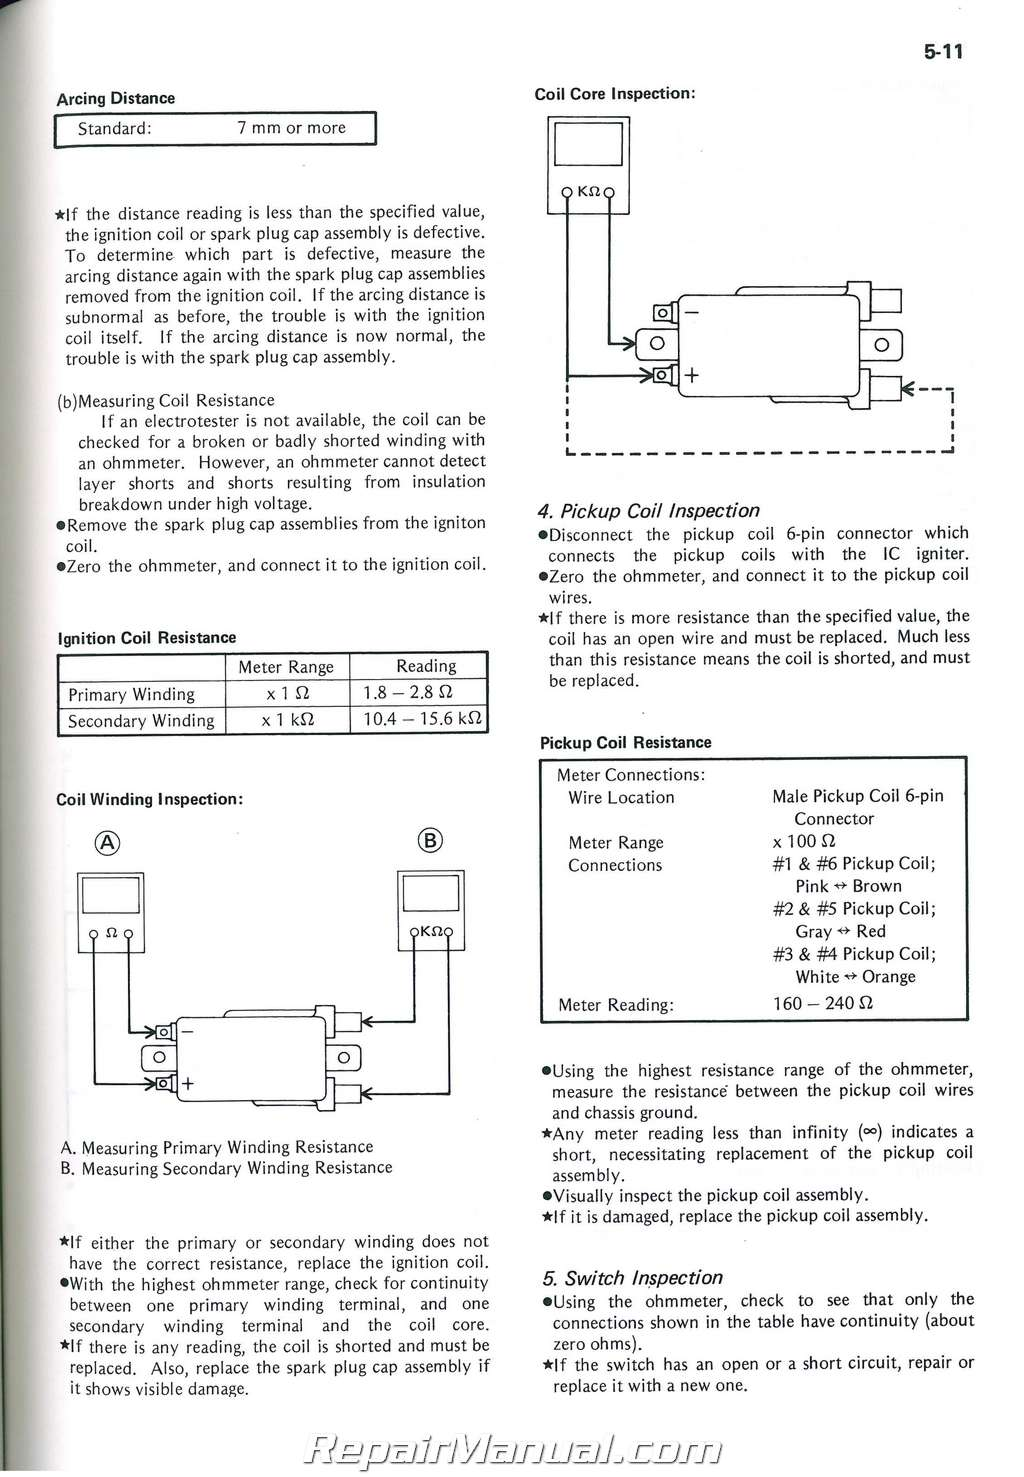 Wiring Diagram Of Kawasaki 1986 1300 Voyager Data Diagrams Xii 1983 1989 Zn1300 Motorcycle Service Manual Supplement Rh Repairmanual Com Vulcan 750